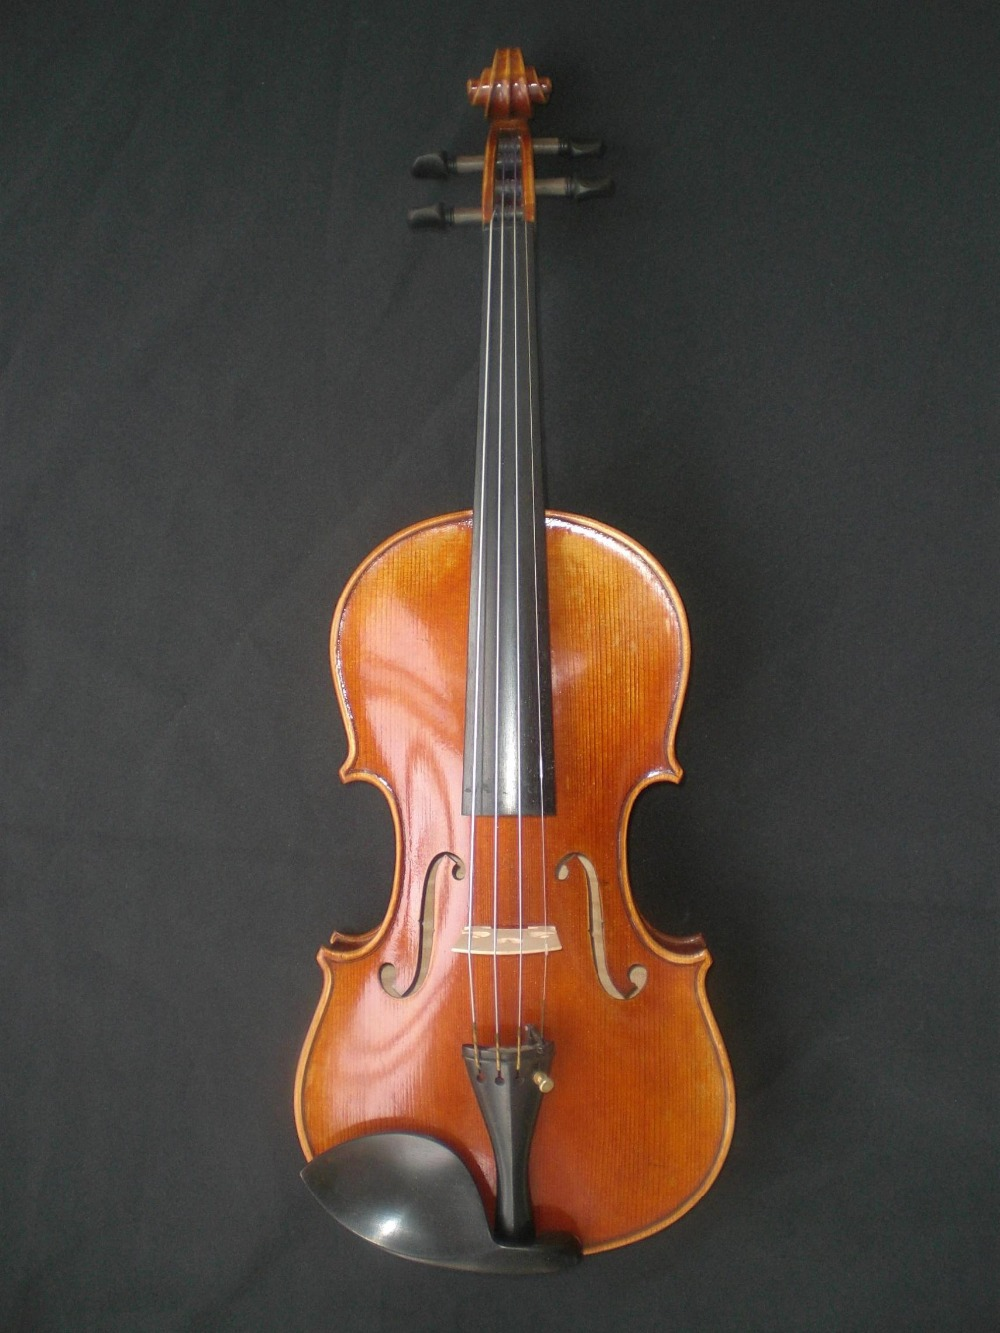 Antique Oil Varnish Strad style Great Master Violin 4/4 Handmade with Excellent sound 1202# austrian spruce ch j b collion mezin copy french master violin no 1408 nice sound antique violin100% handmade